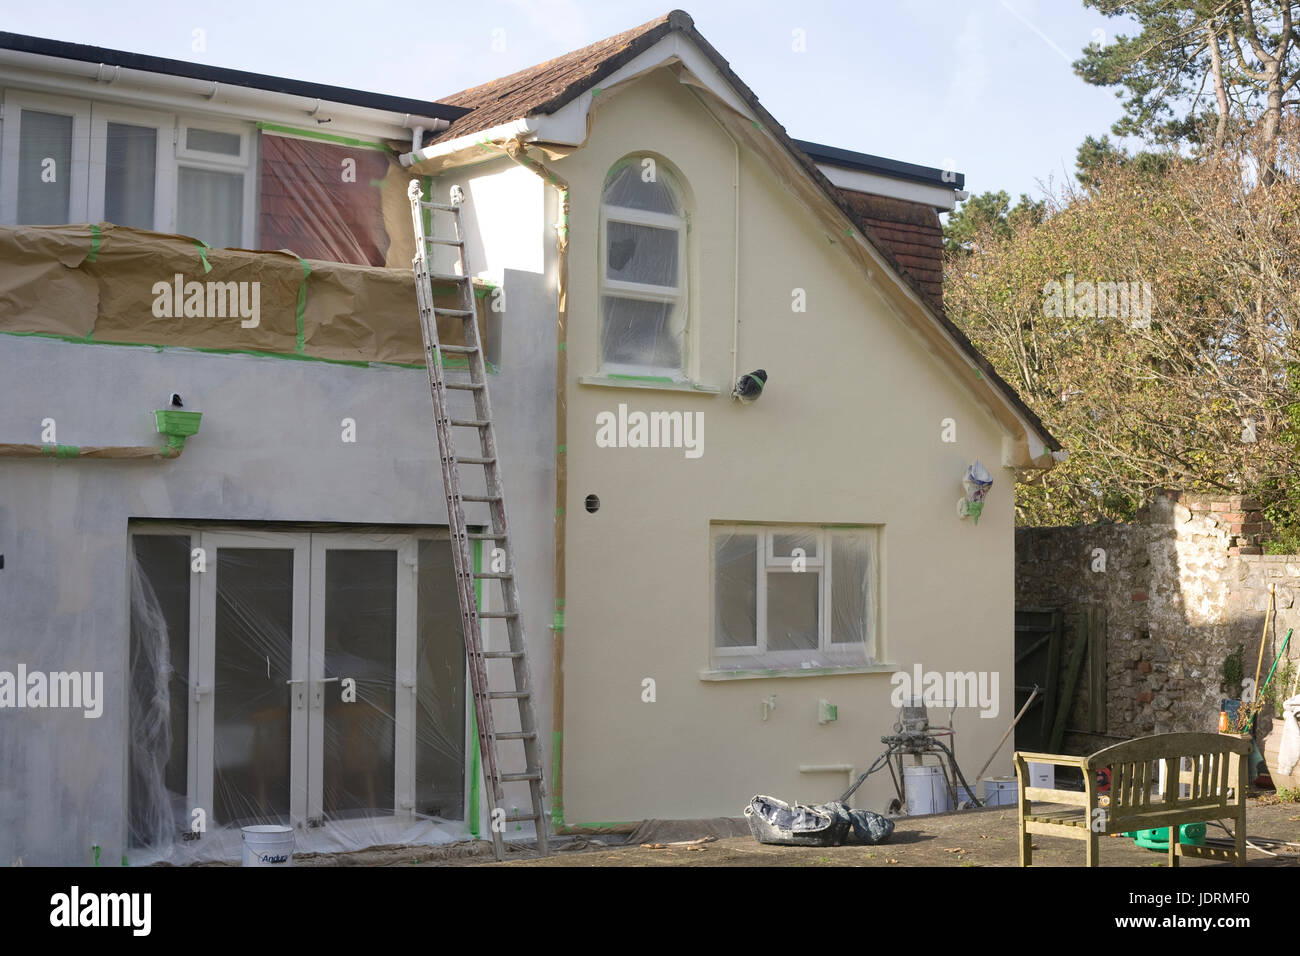 Rear of detached house during extensive repainting with special long lasting wall coating - Stock Image